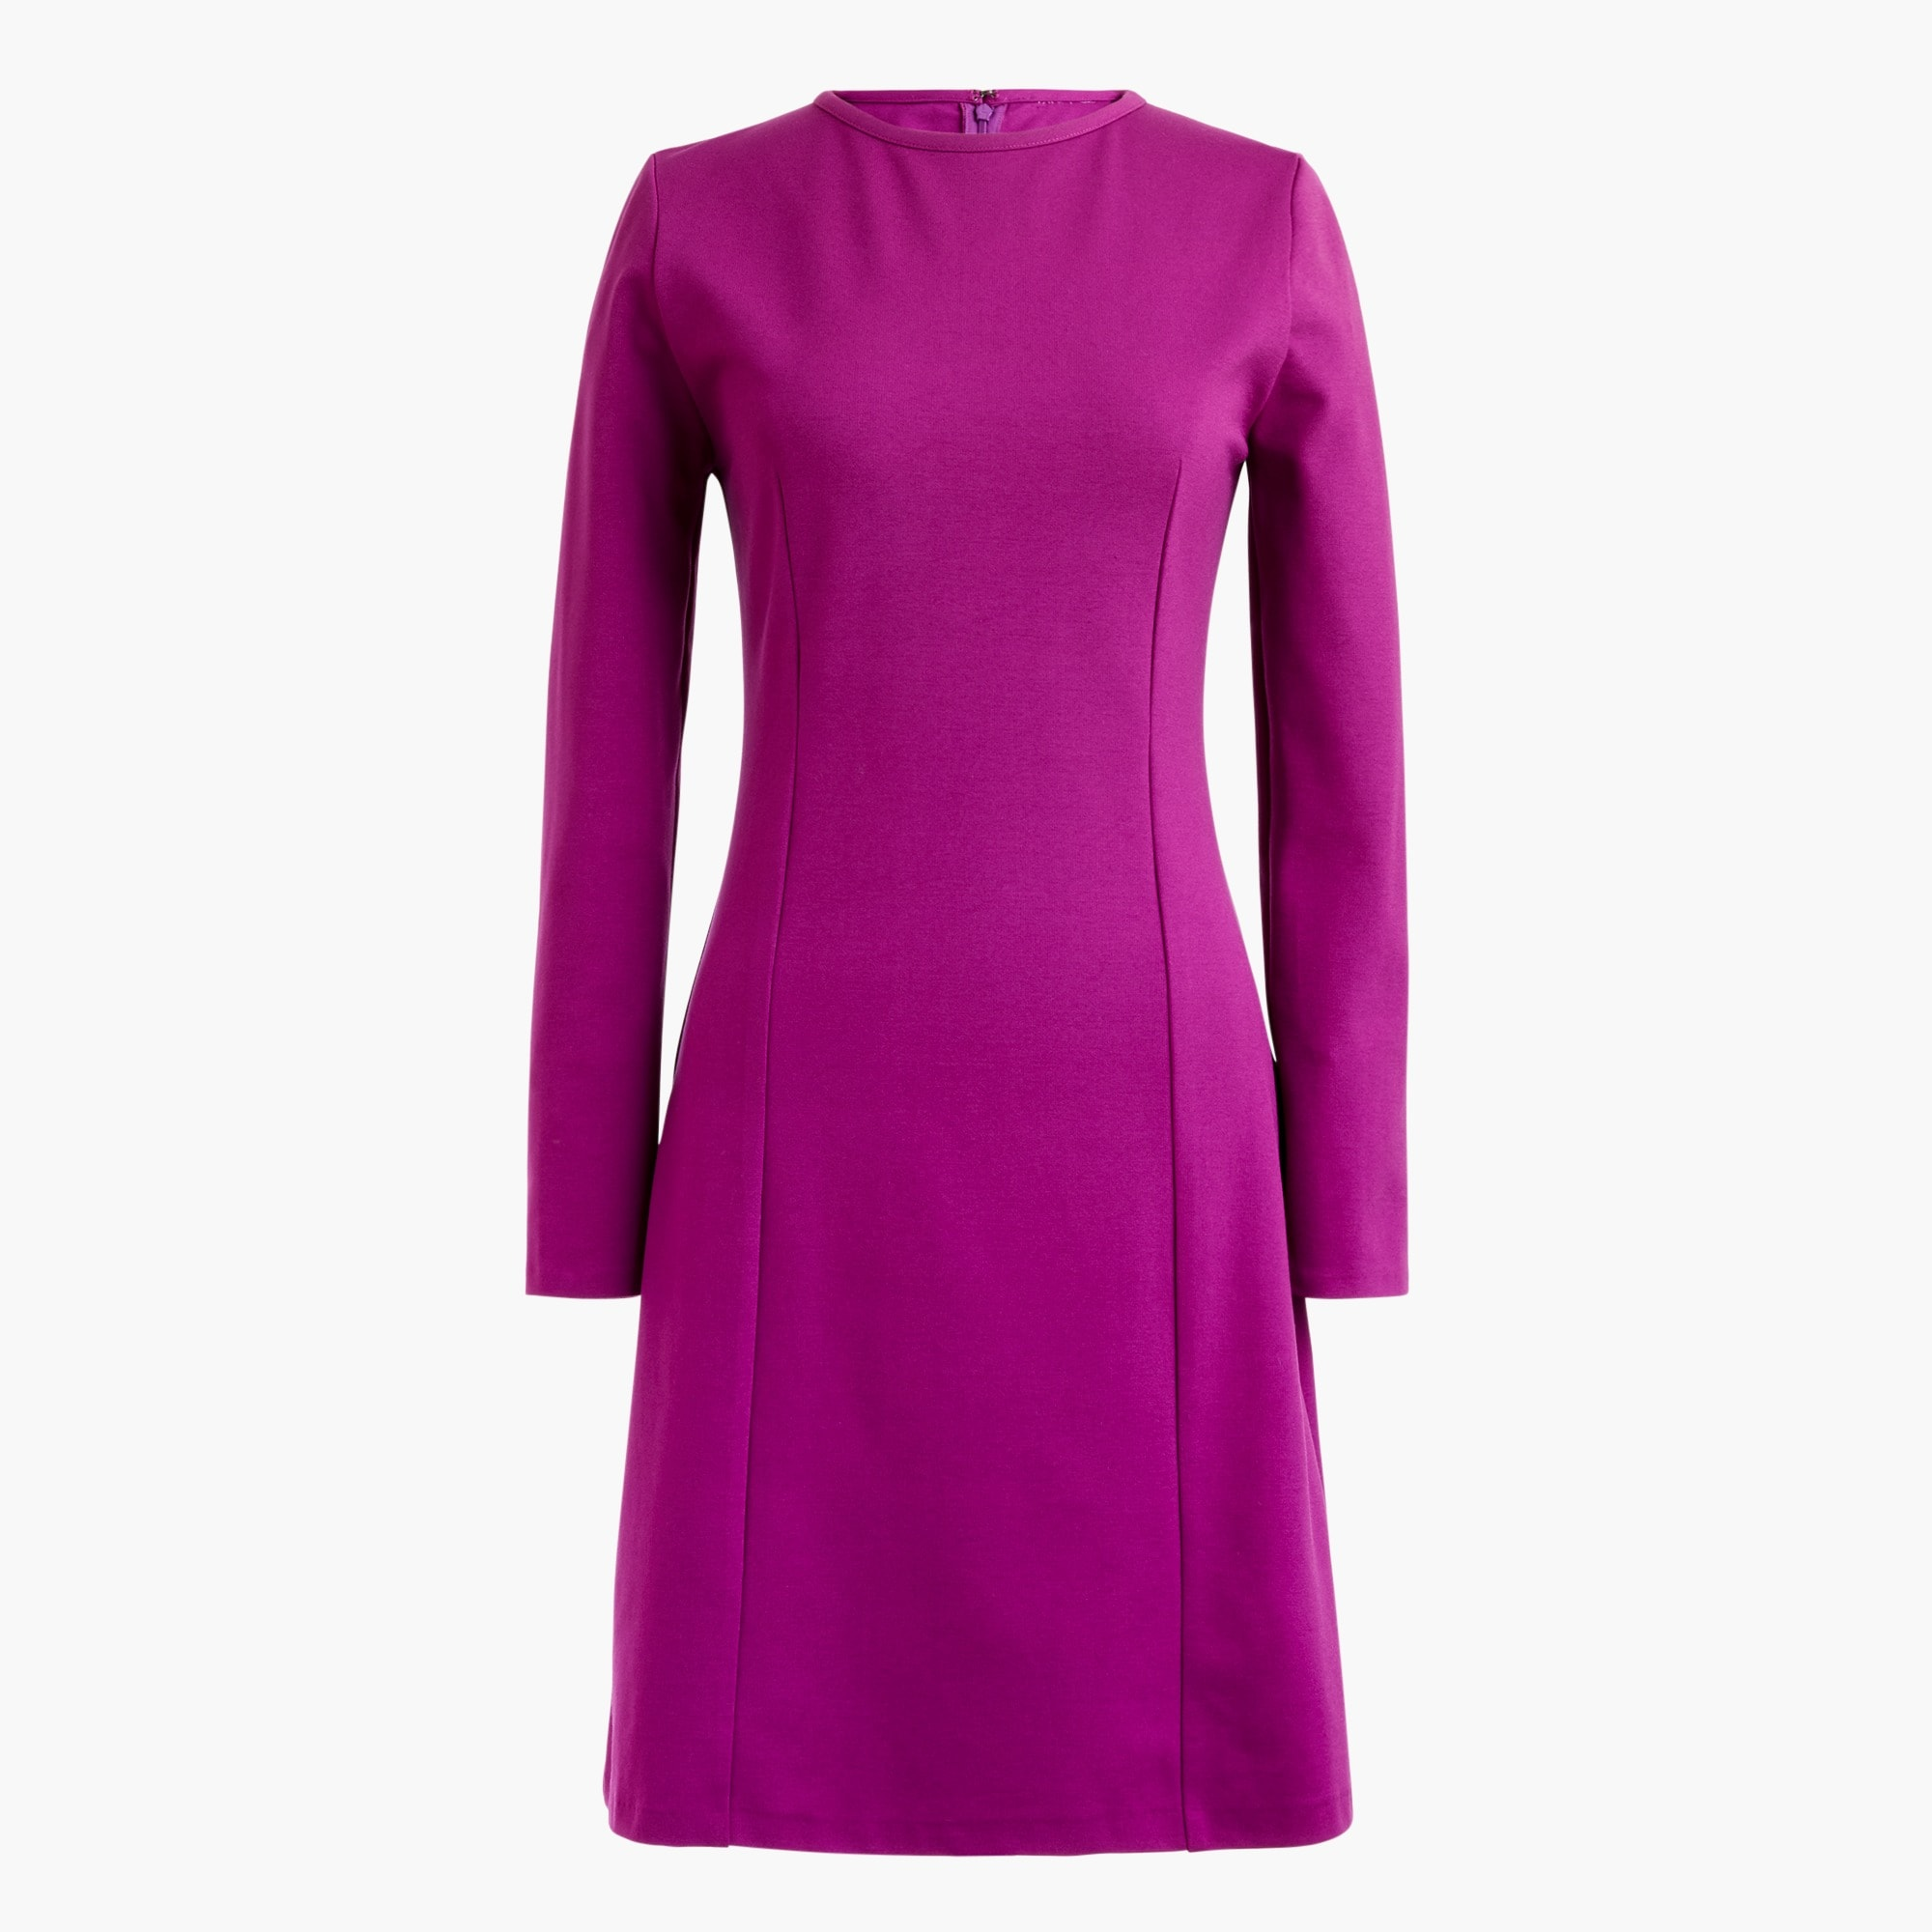 women's petite long-sleeve sheath dress - women's dresses